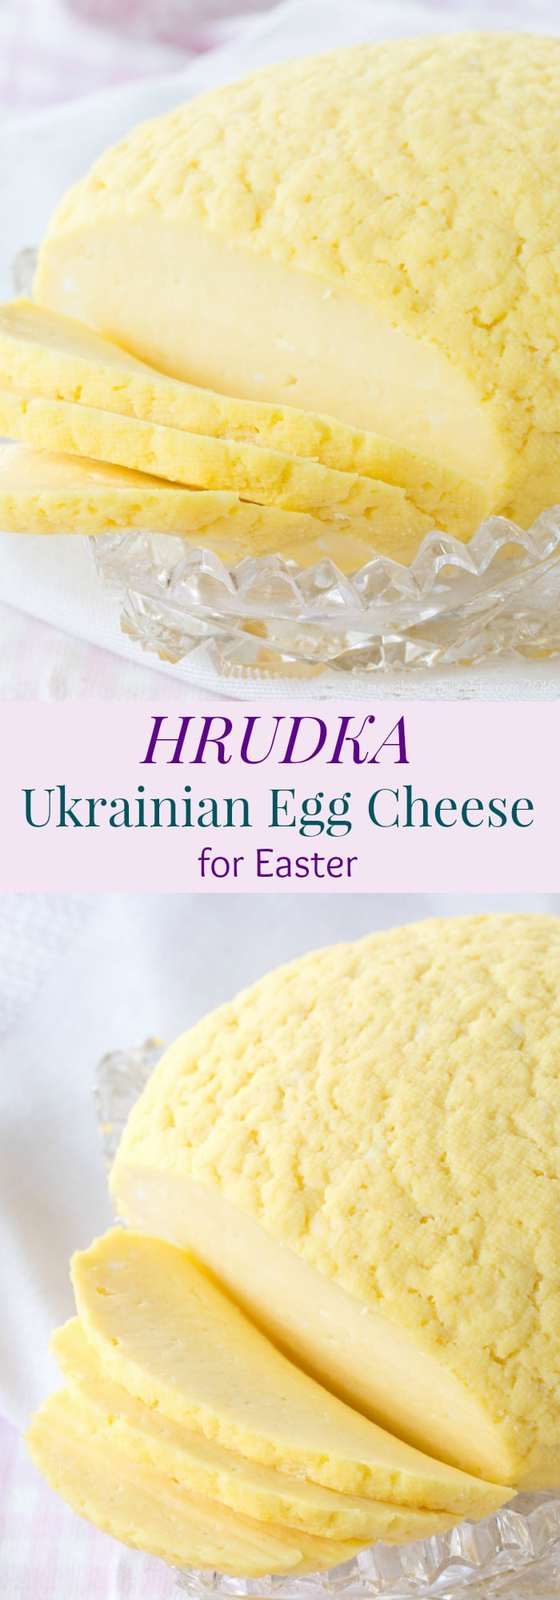 Hrudka - the traditional Ukrainian Egg Cheese for Easter